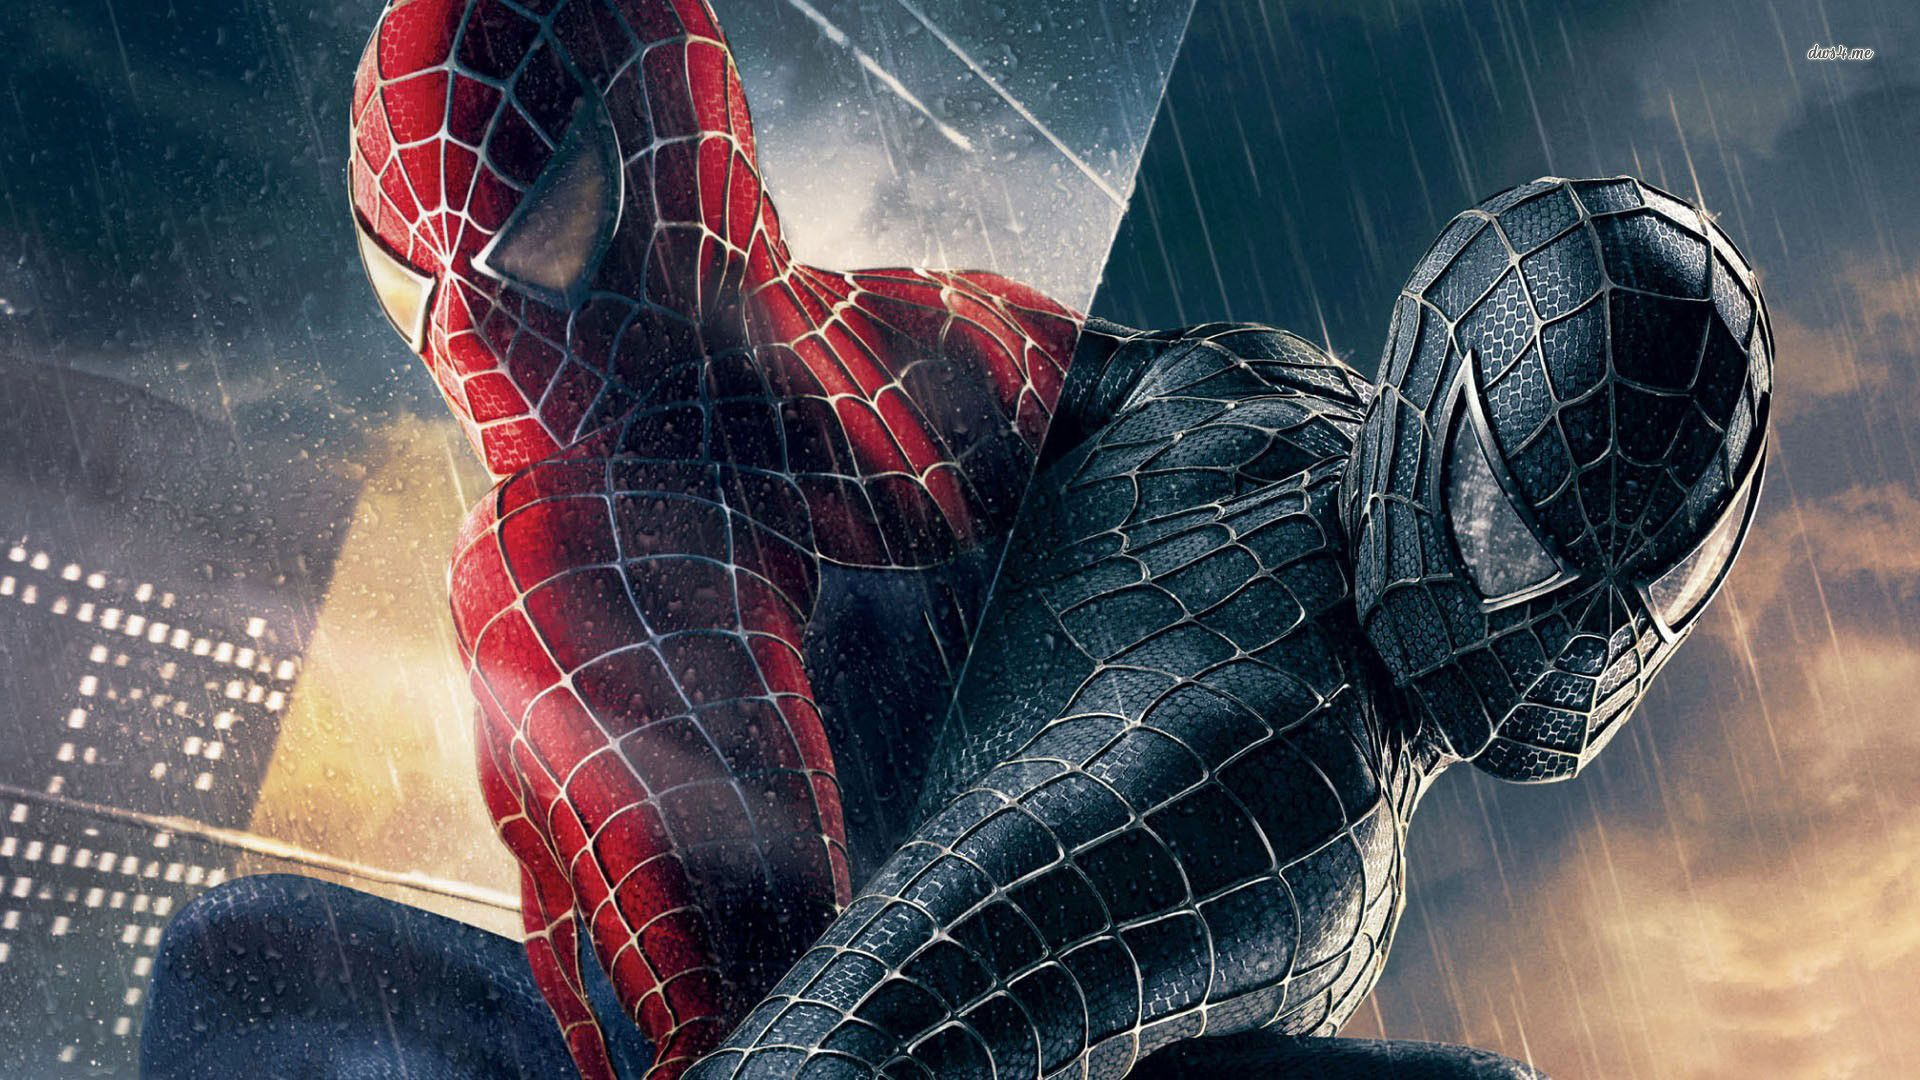 Spider Man 3 Wallpapers 1920x1080